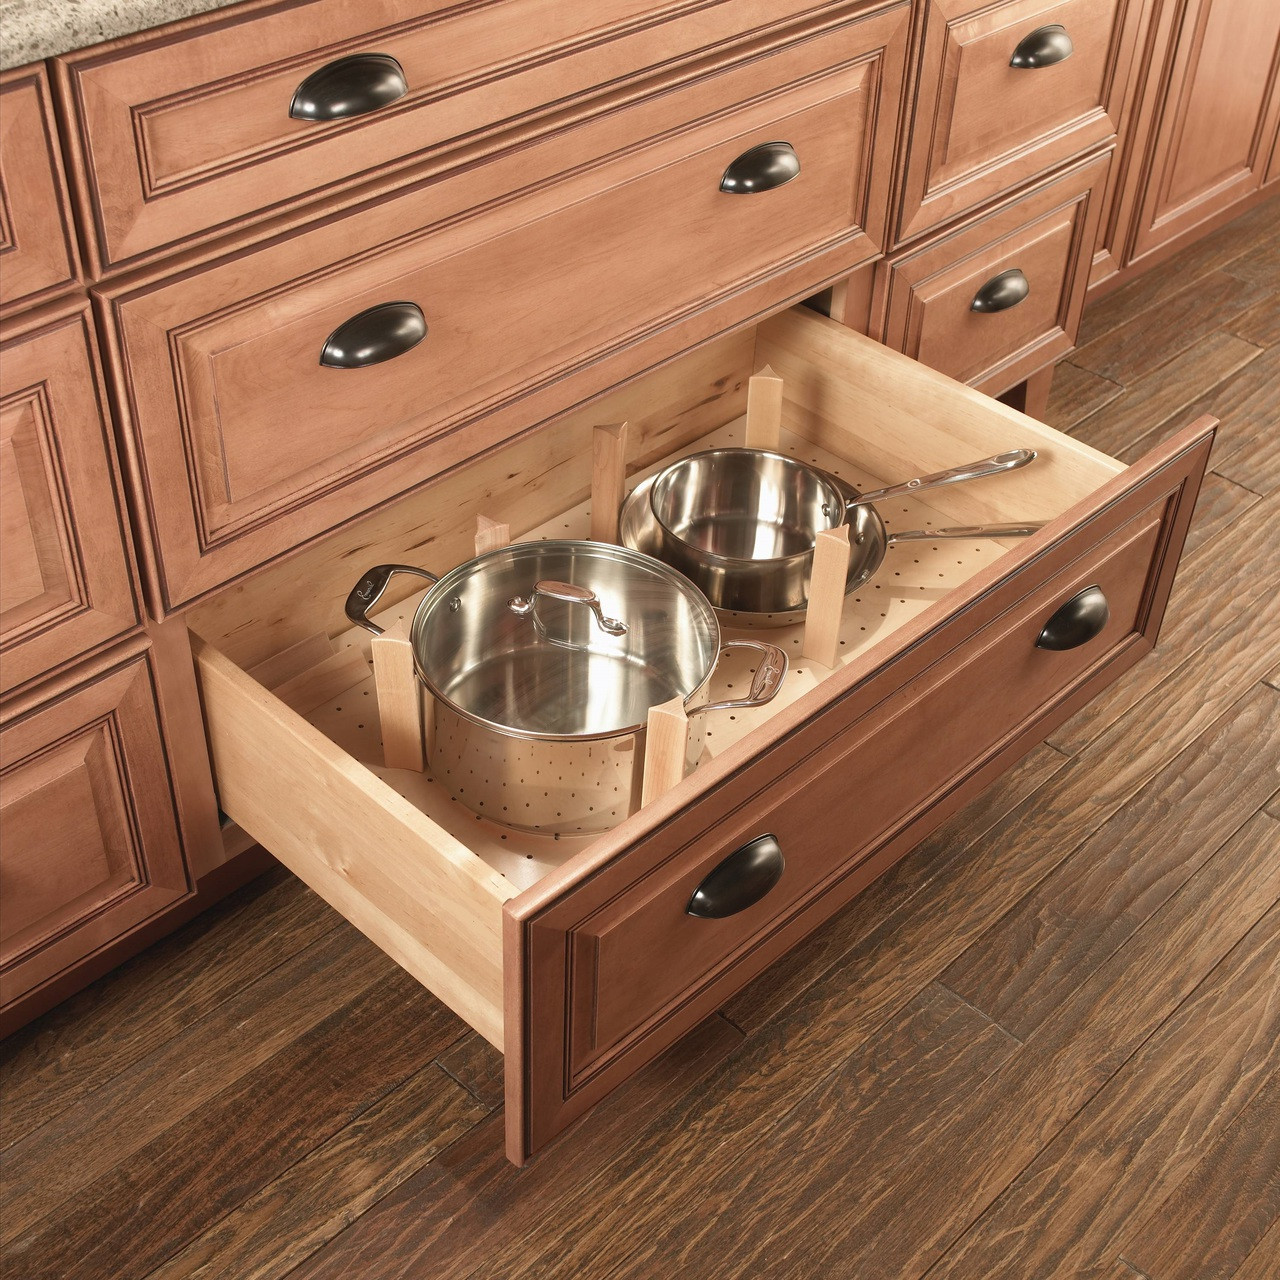 Kitchen Cabinets With Drawers: Pegged Deep Drawer Organizer